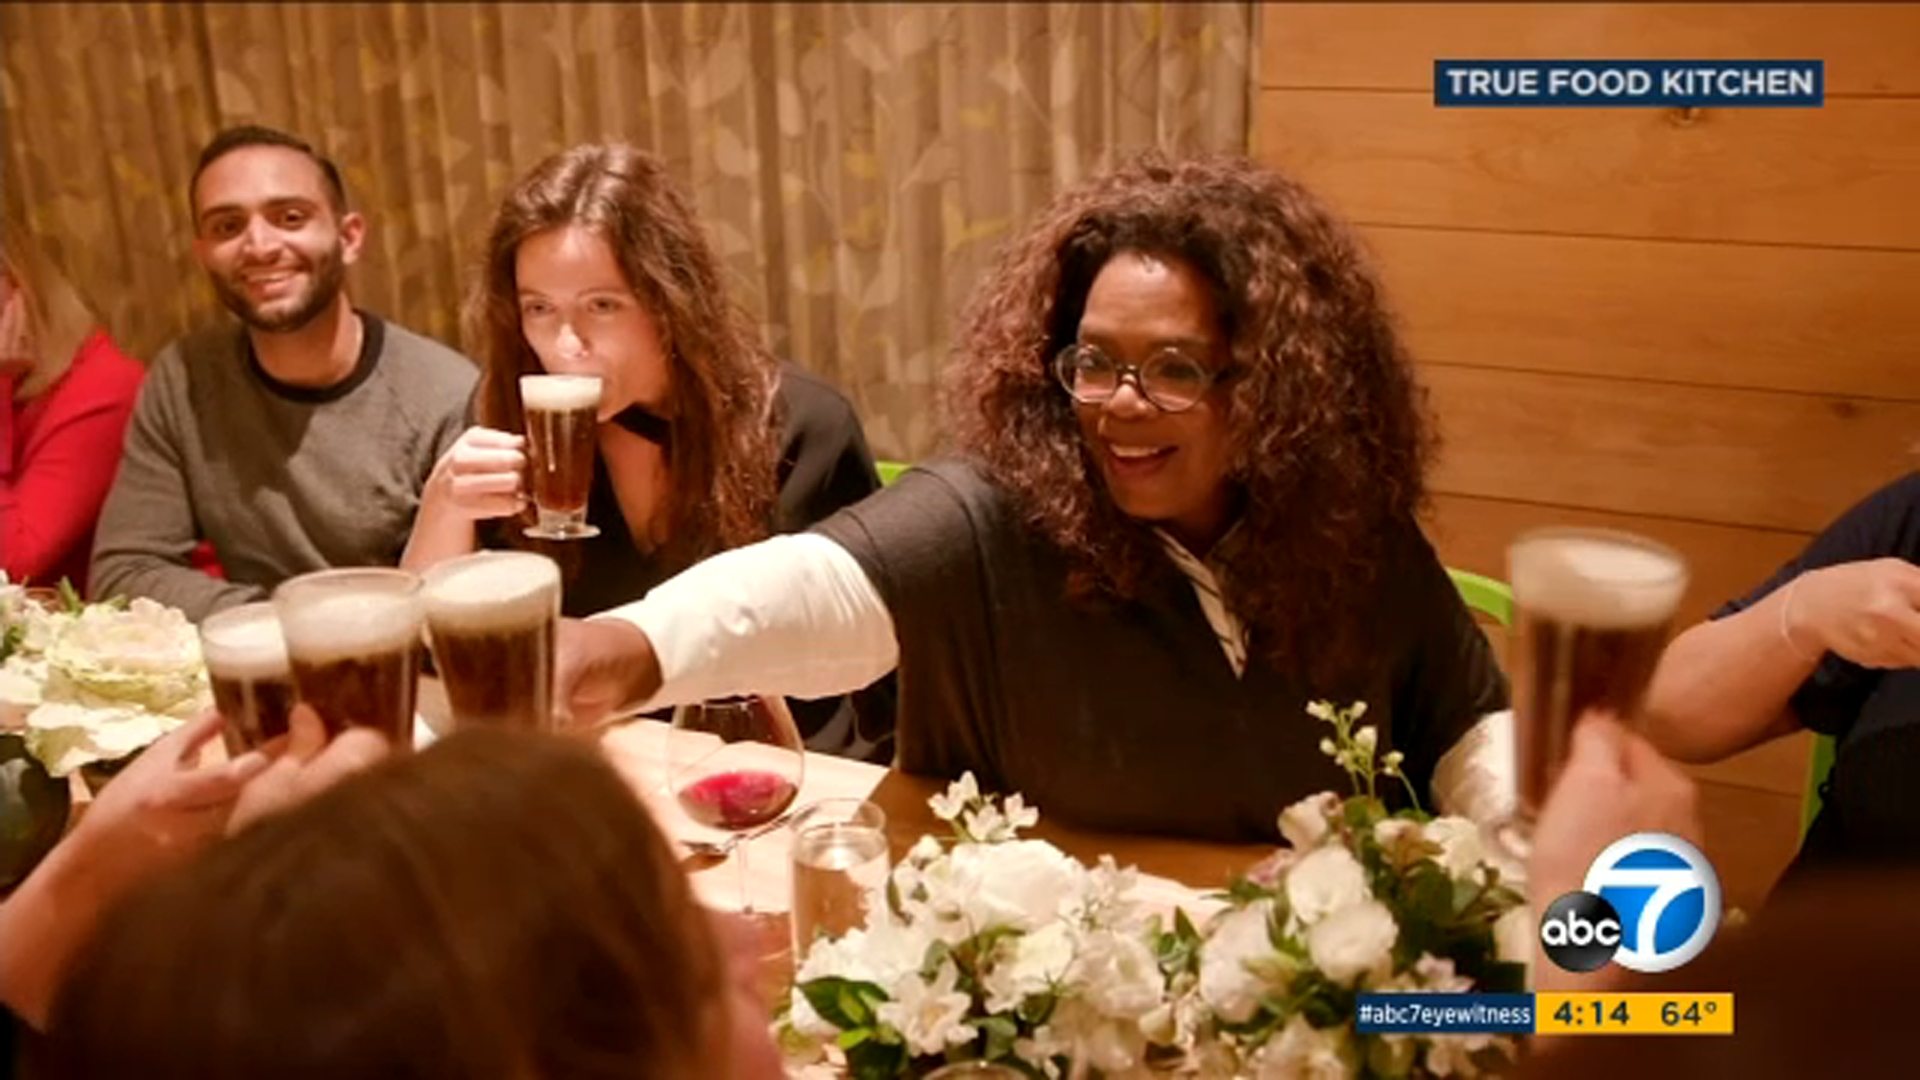 People are seen dining with Oprah at True Food Kitchen in Pasadena.